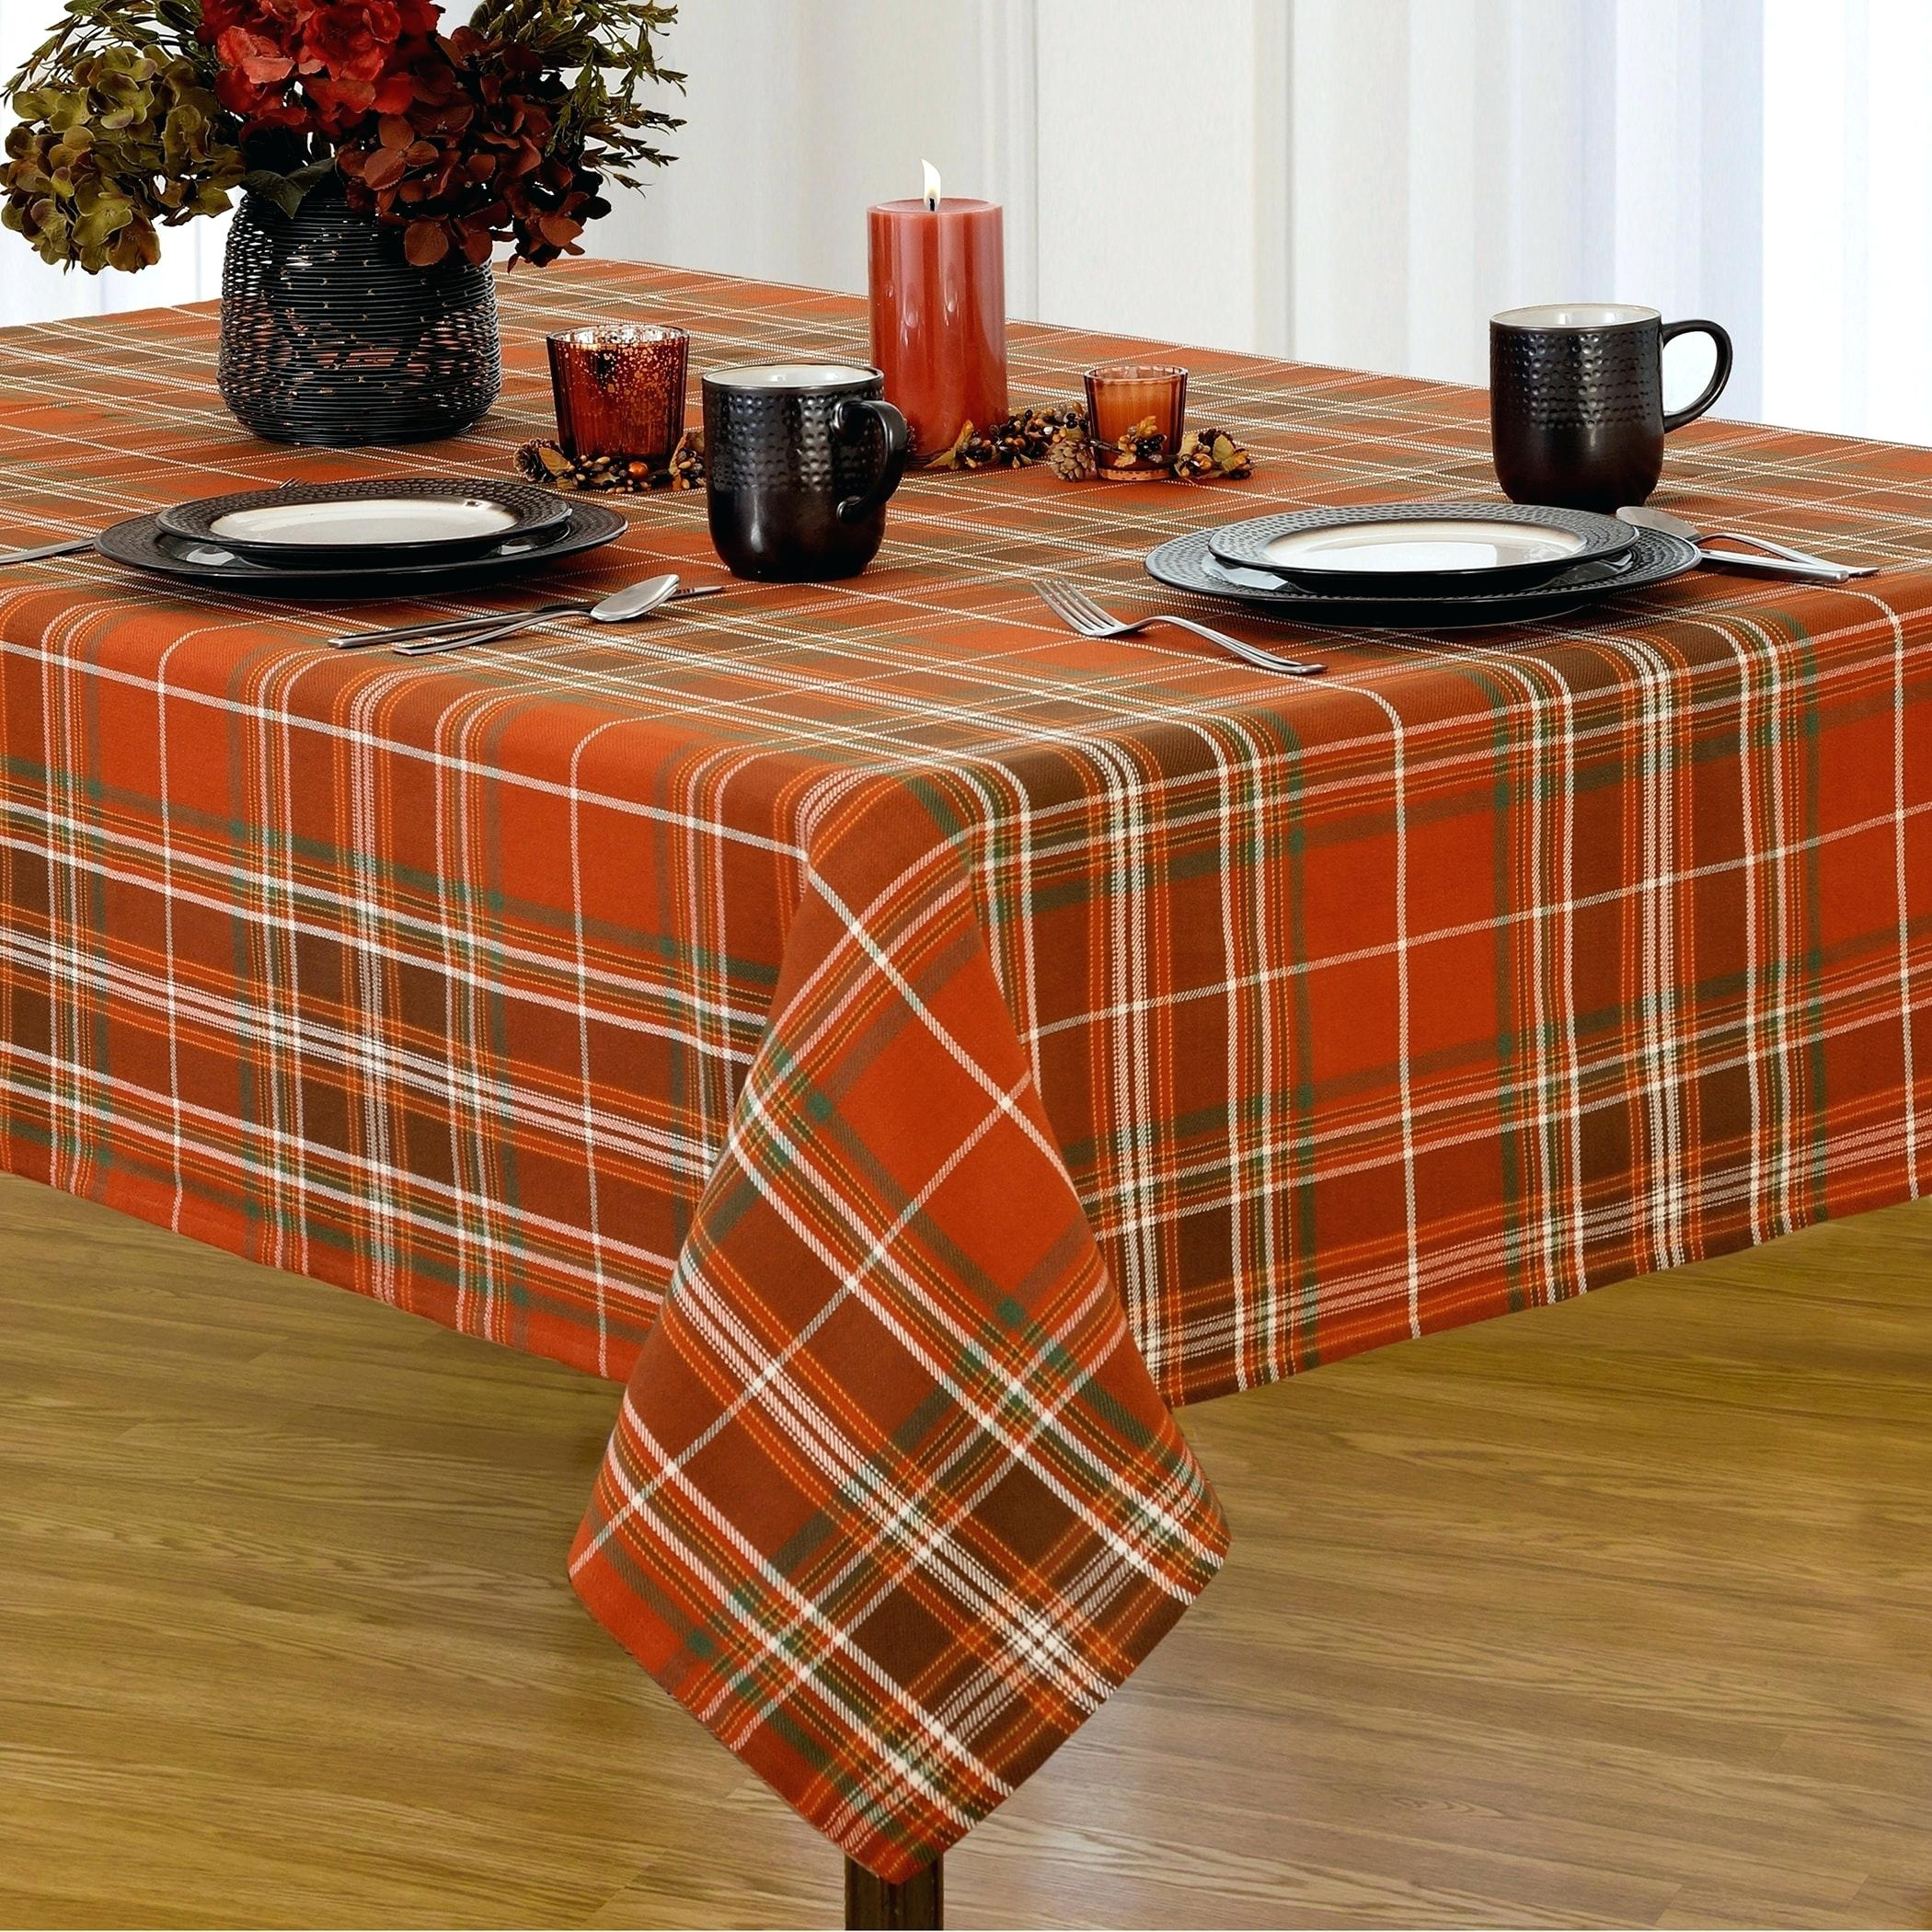 round accent table covers inch decorative plaid fabric harvest cotton woven tablecloth for small side and tables marble chairs tall skinny nightstand outdoor patio lights dining